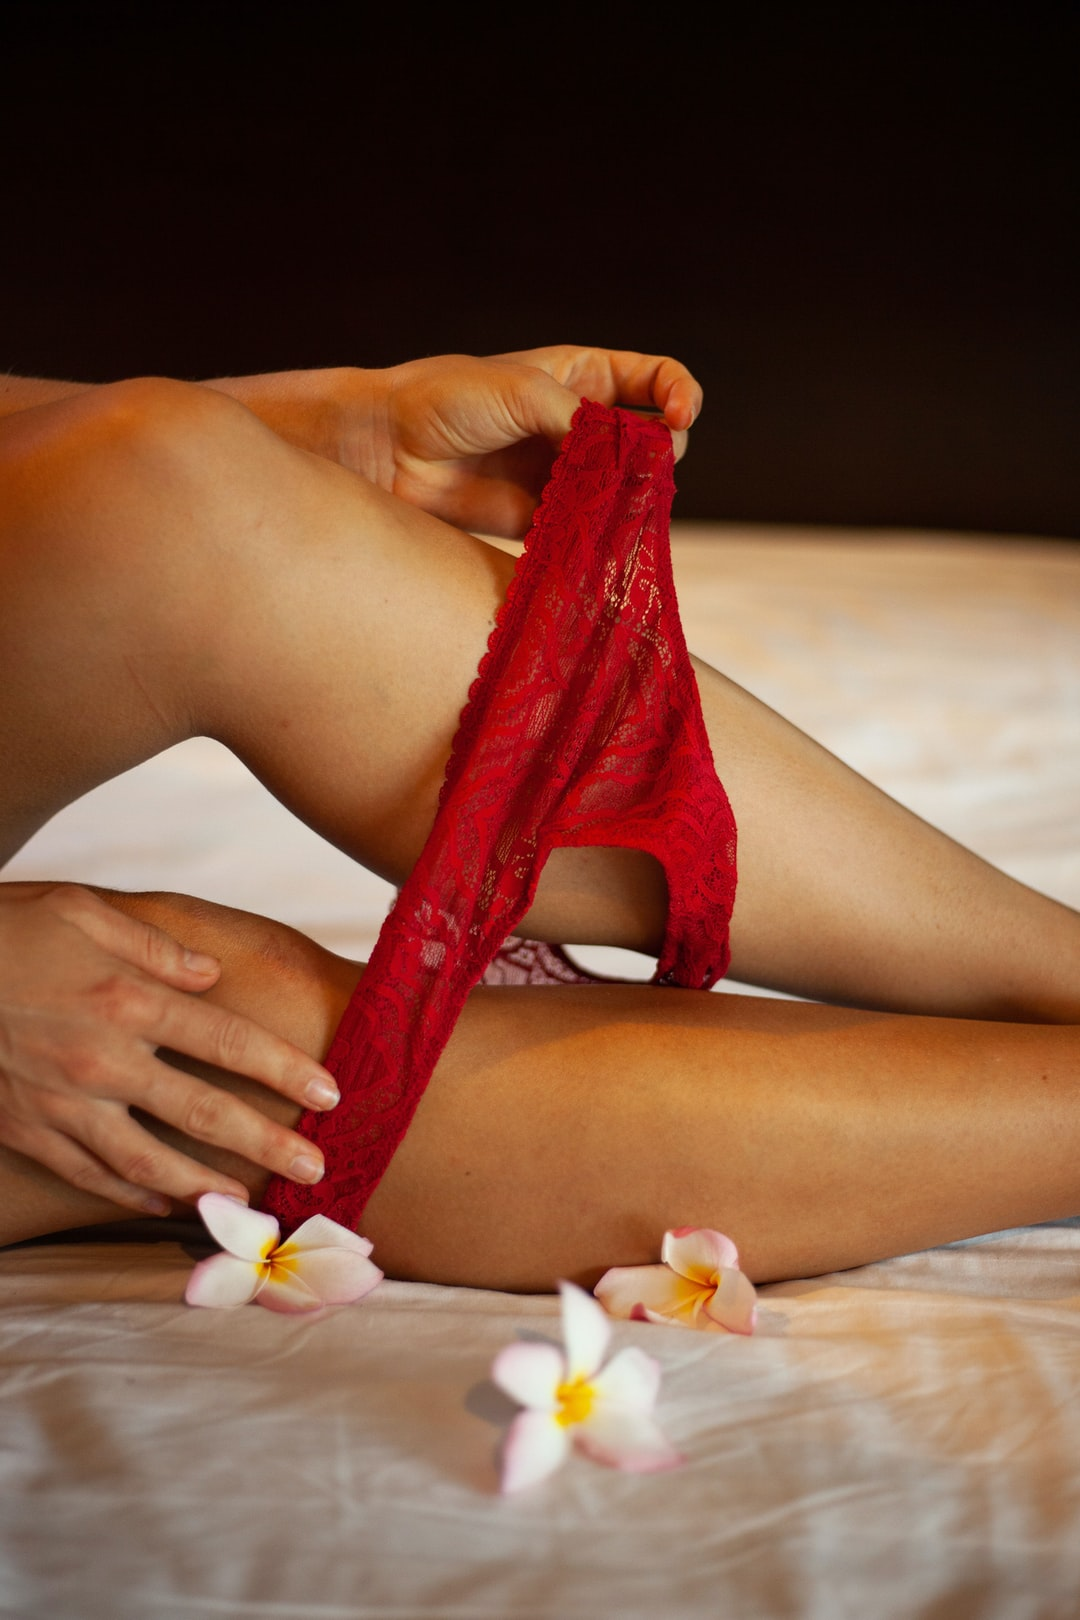 A closeup of a hot girl legs and red panties in suggestive erotic manner. Background with a bed and flowers.